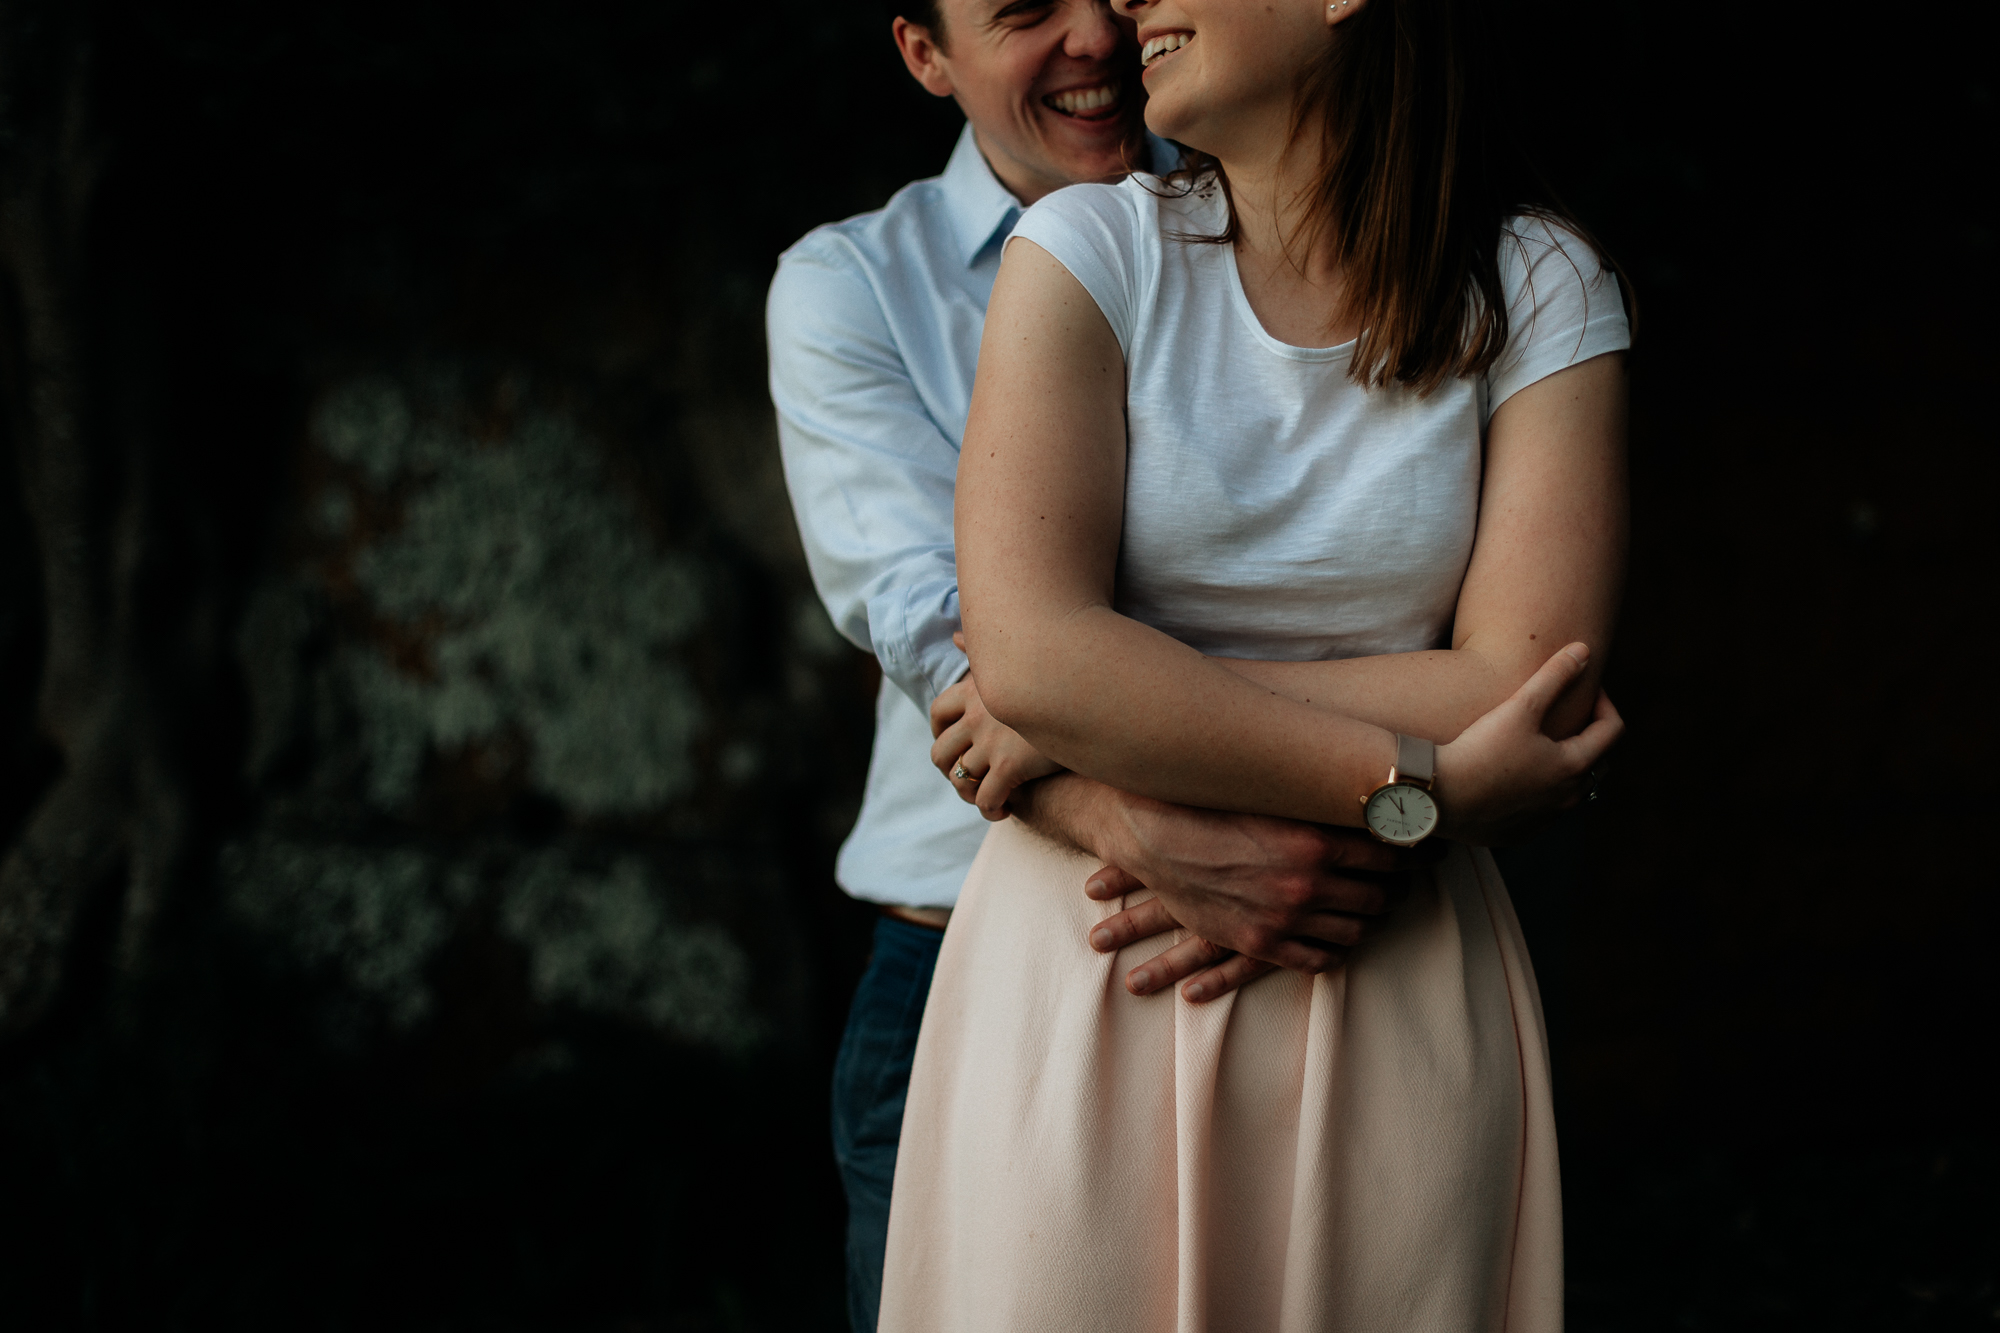 Amanzi and Steven_Engagement_Sydney_Holly Medway Photography-32.JPG